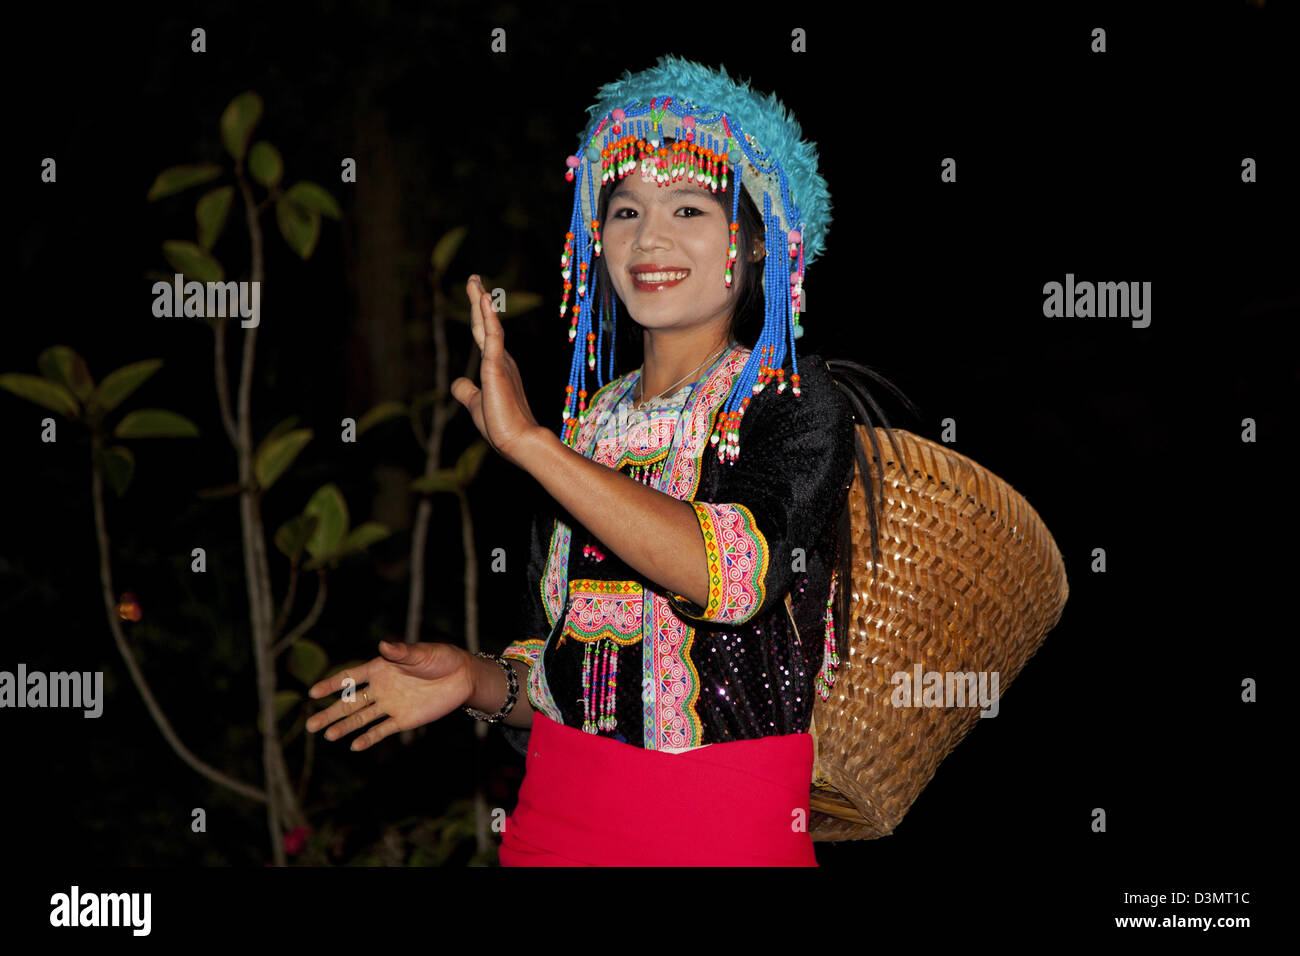 Portrait of traditional tribal dancer wearing headdress with colourful beads, Laos, Southeast Asia - Stock Image